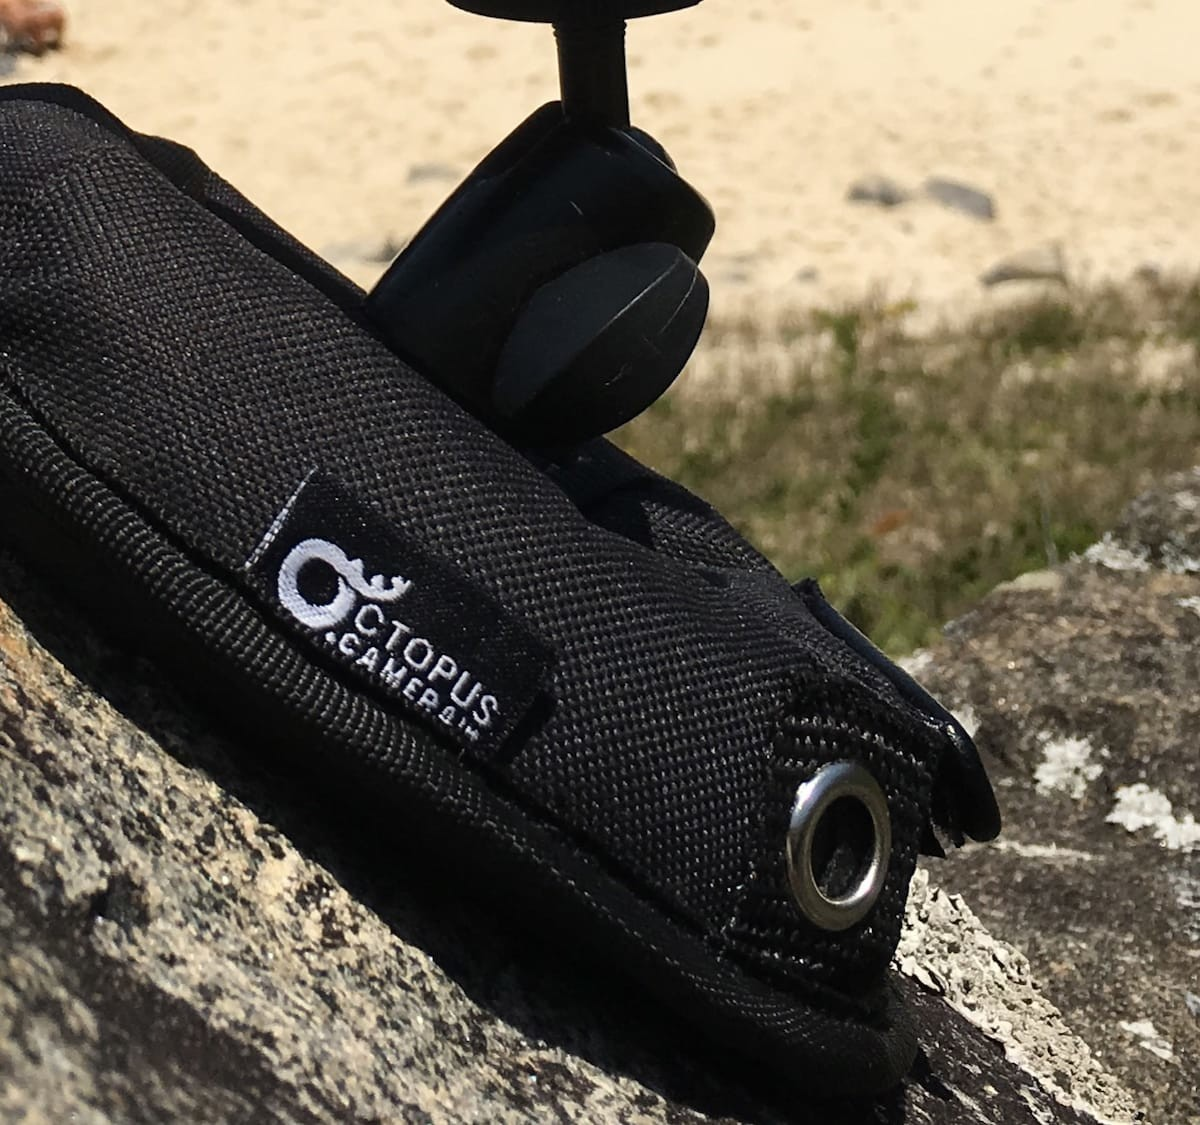 OctoPad universal camera stand acts as a tripod for your phone, camera, or action camera